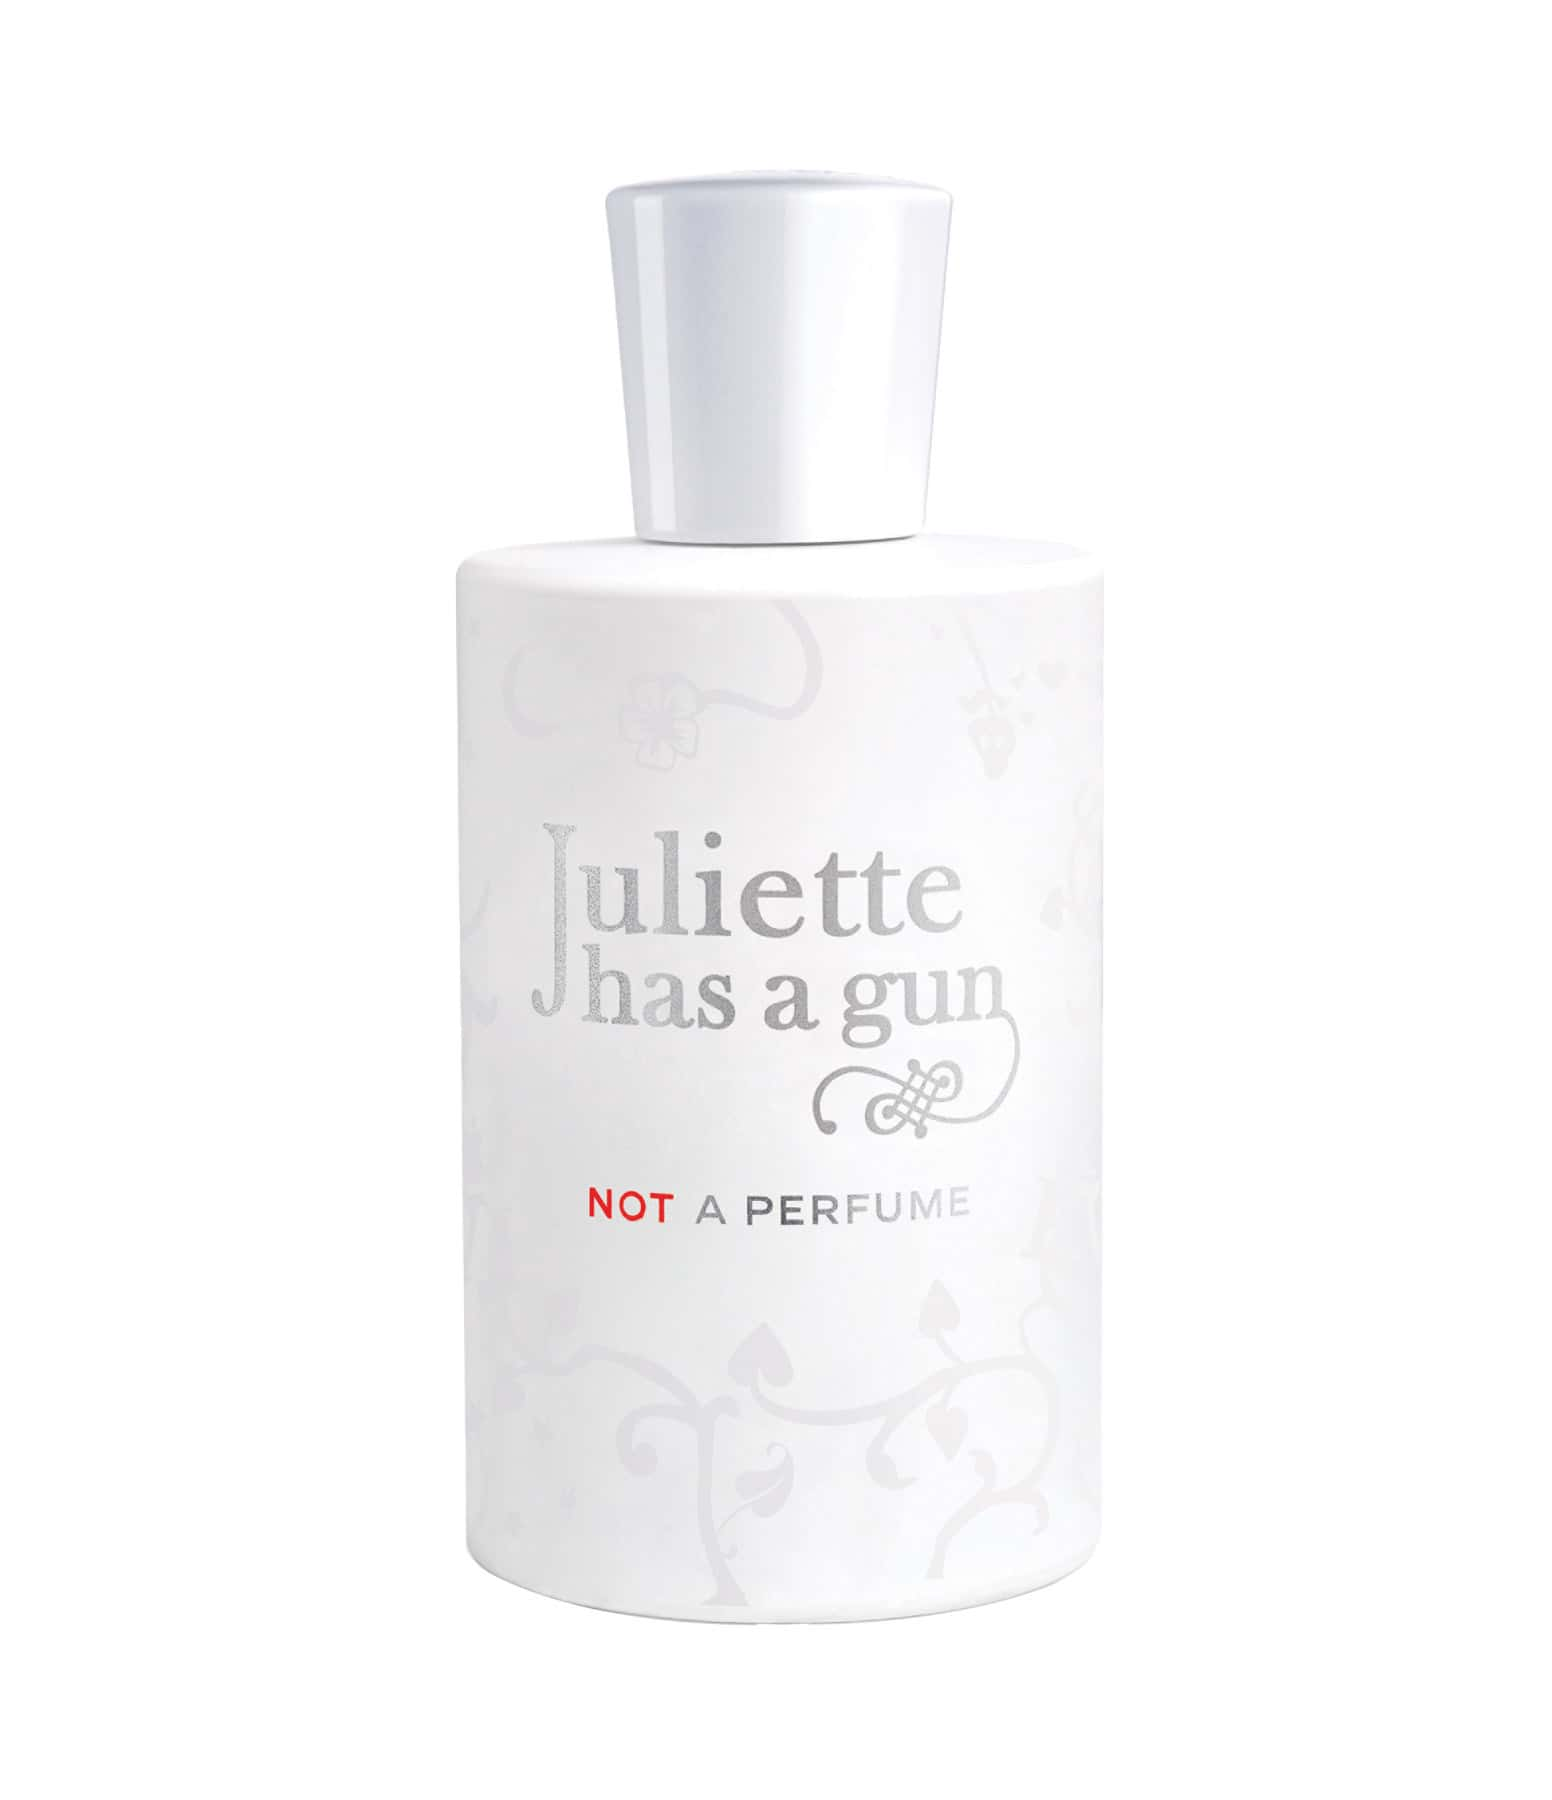 JULIETTE HAS A GUN - Eau de Parfum Not a Perfume 100 ml